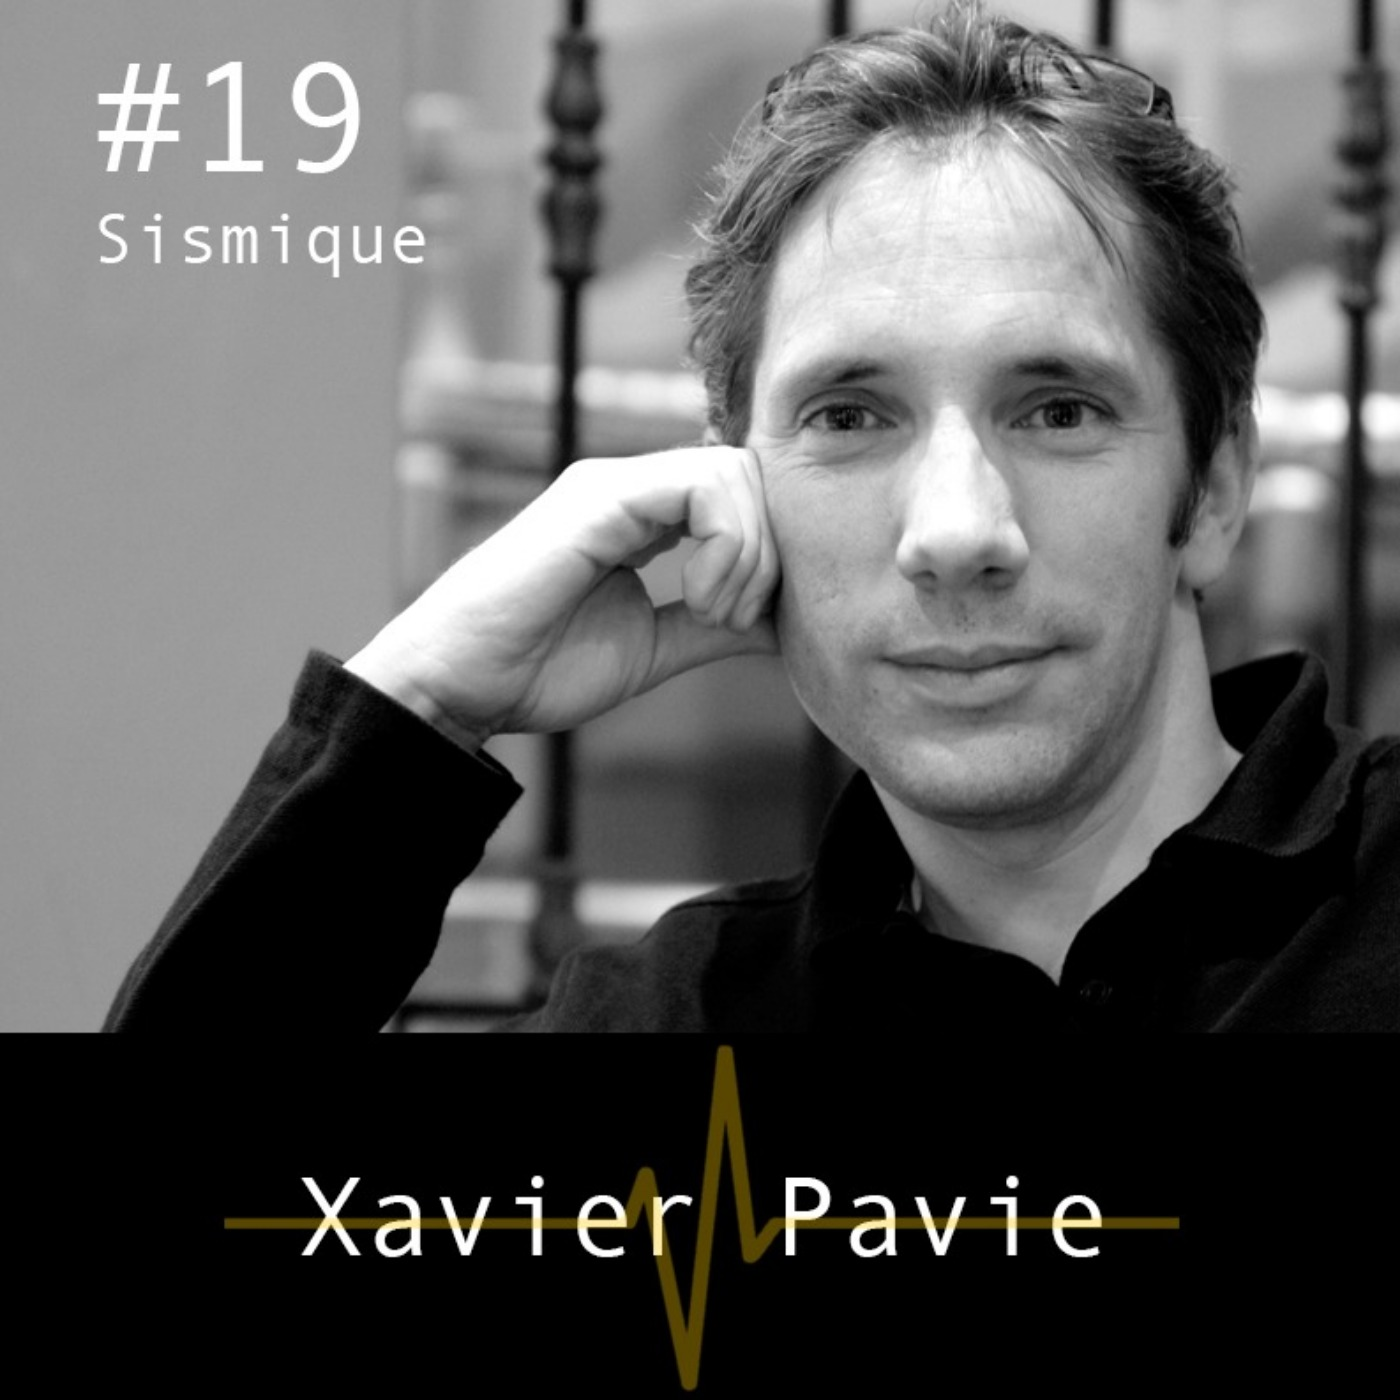 #19 - L'innovation à l'épreuve de la philosophie - Xavier Pavie